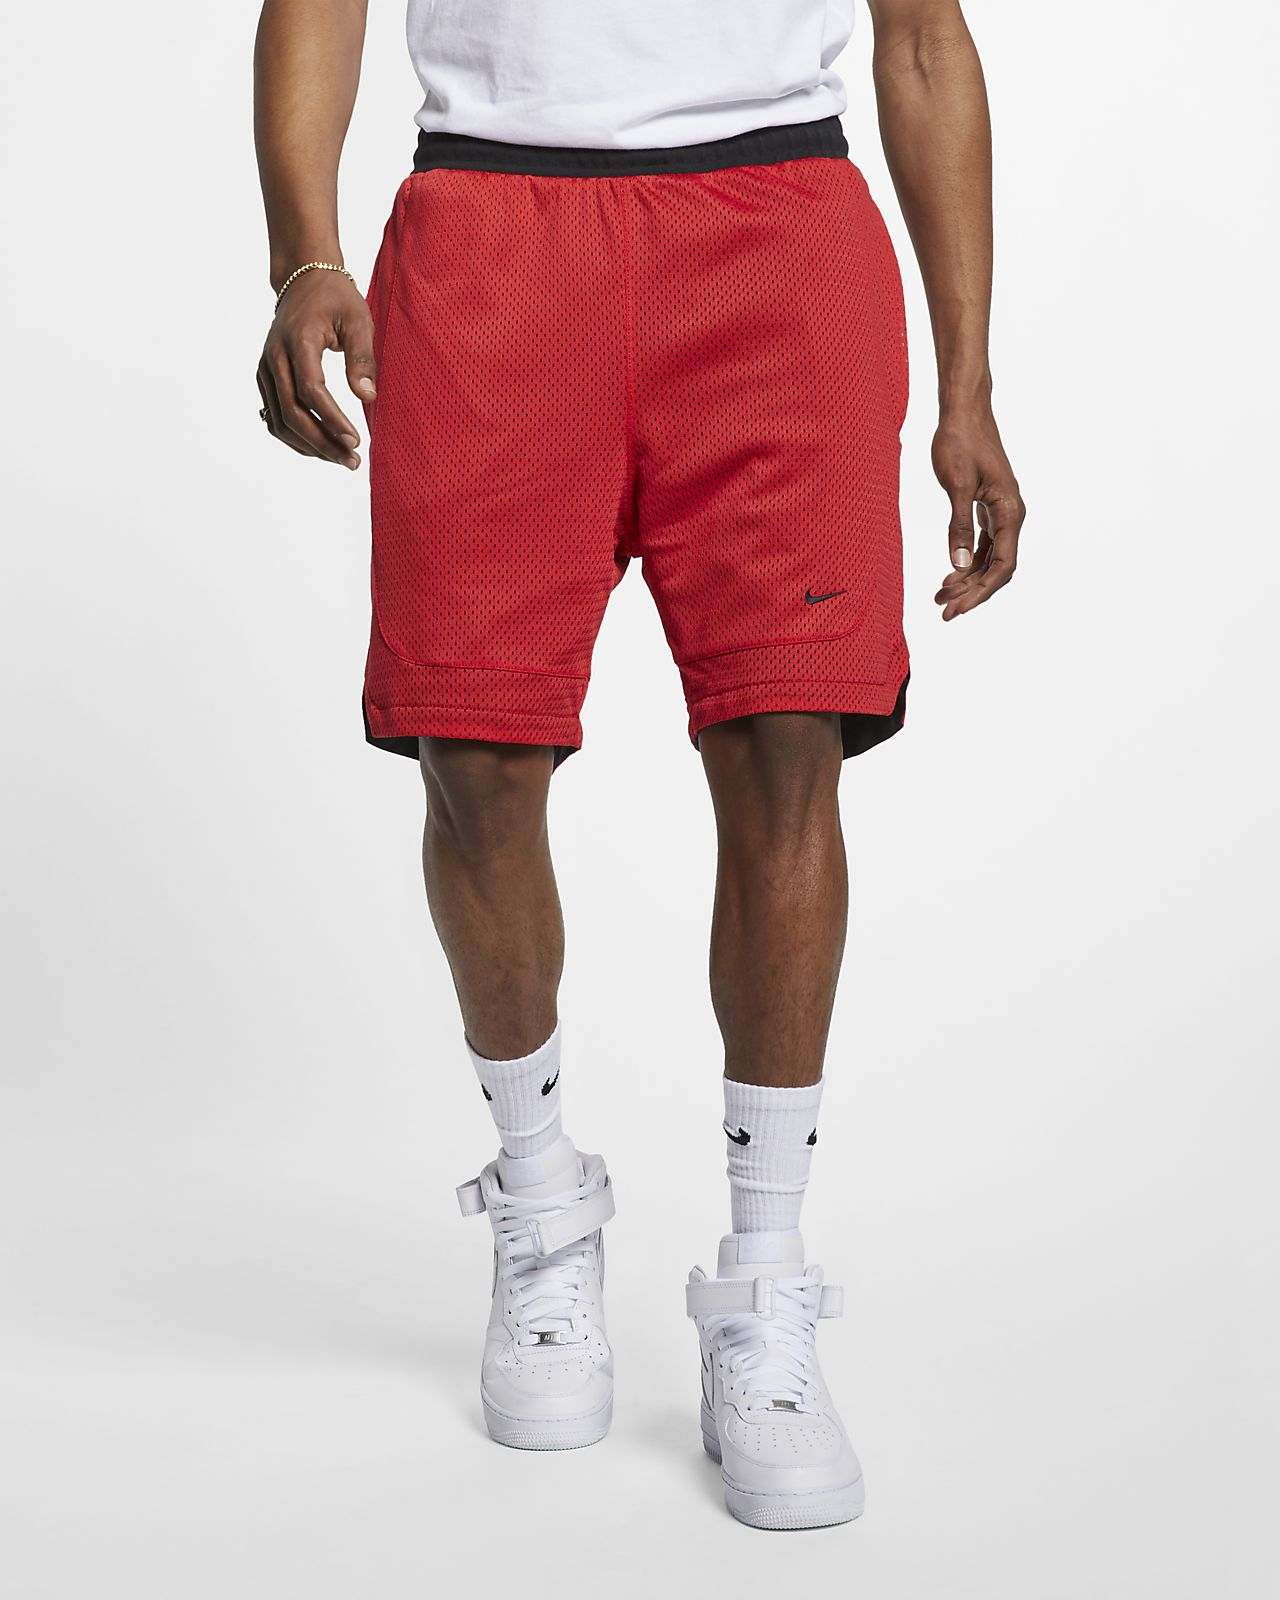 5aa100b317b7 Low Resolution NikeLab Collection Men s Reversible Shorts NikeLab  Collection Men s Reversible Shorts